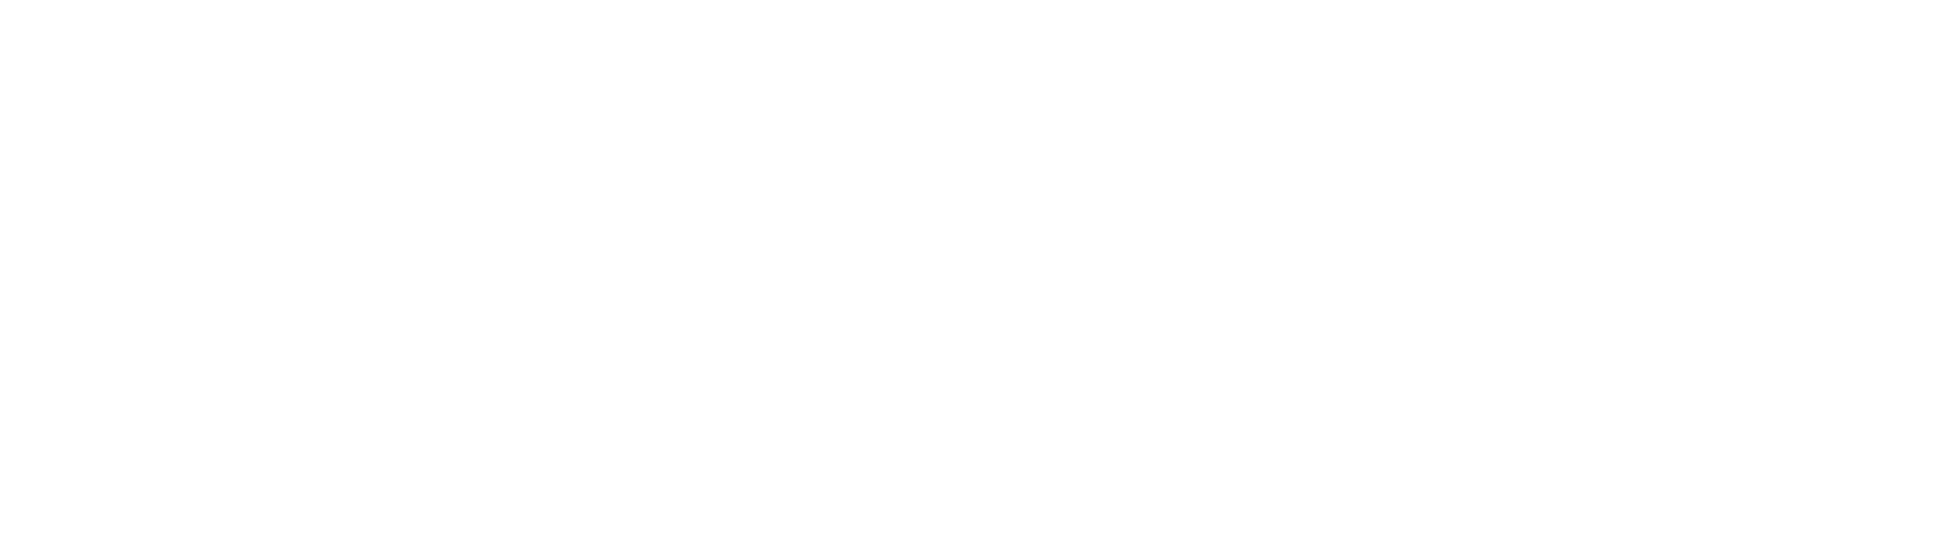 James Chidlow Photography